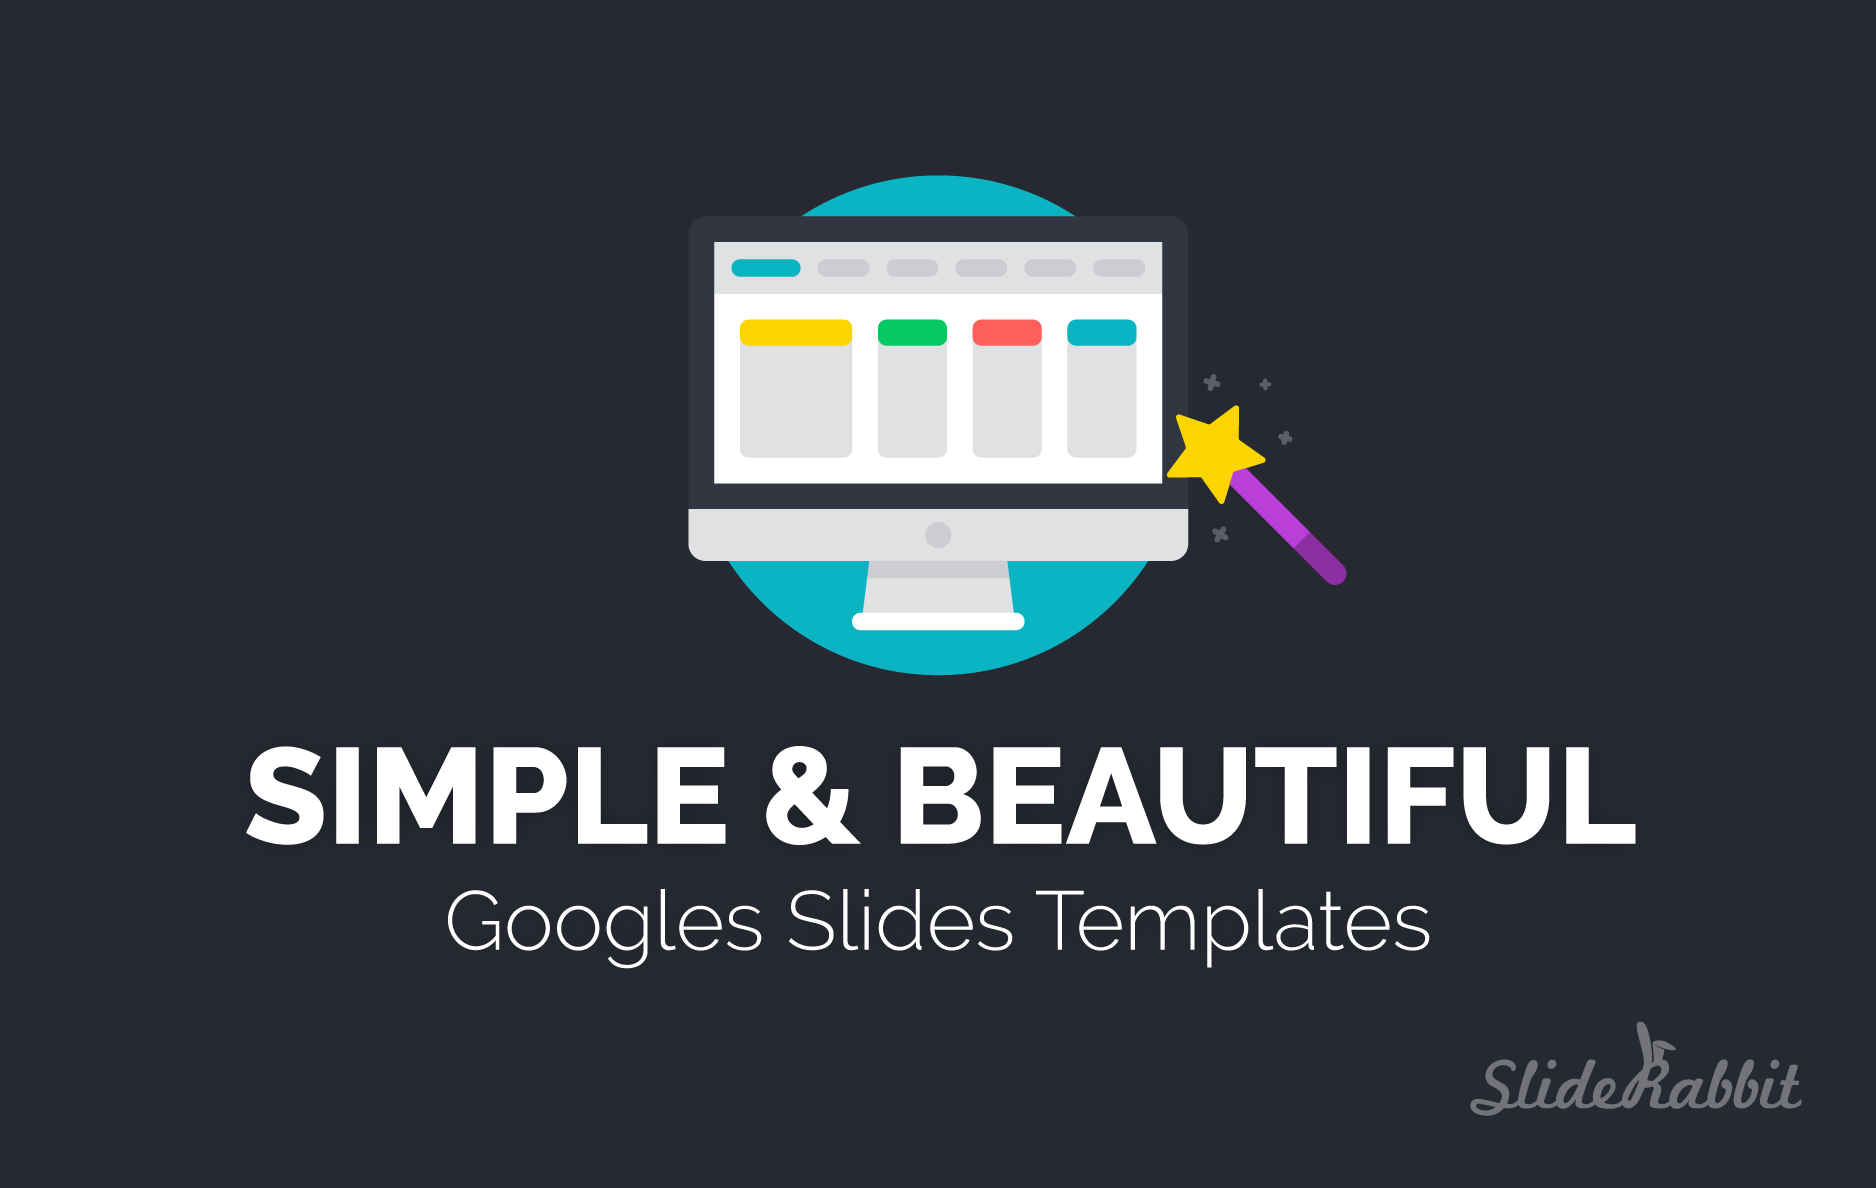 Google Slides Template Design: Simple & Beautiful | SlideRabbit